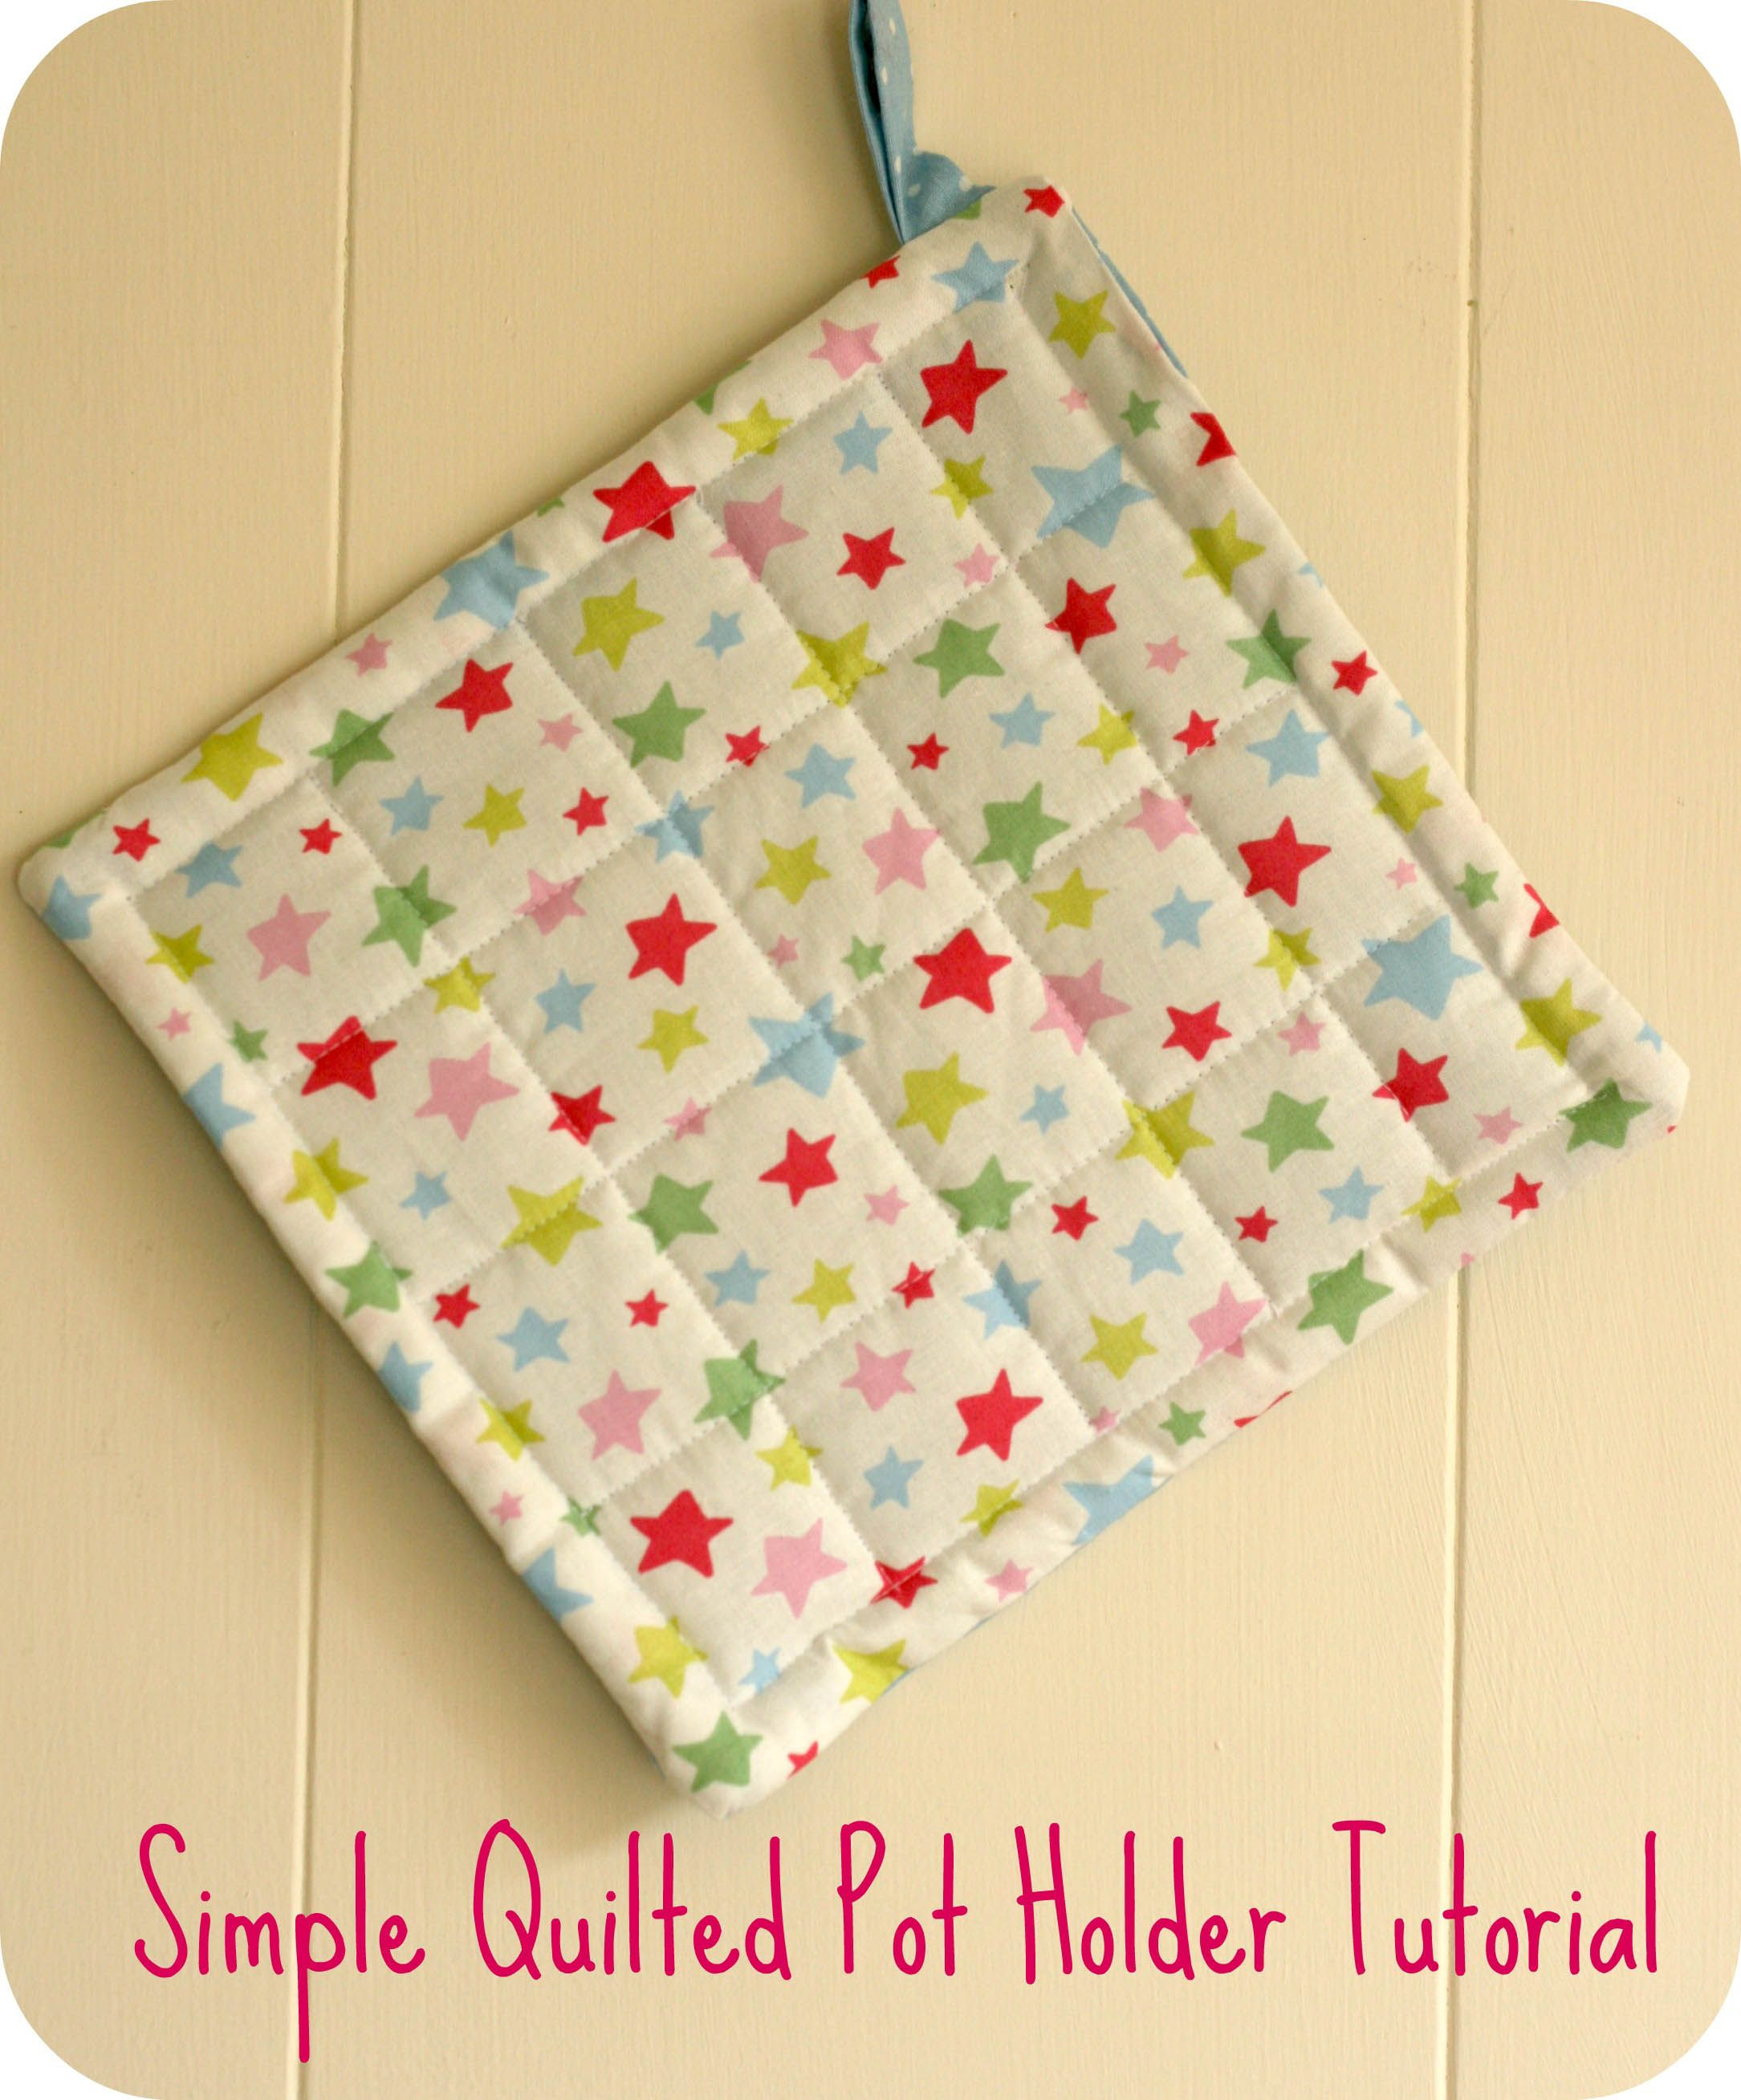 Quilted potholder tutorial. Great gift idea. | Scrap Fabric ... : quilted pot holders - Adamdwight.com